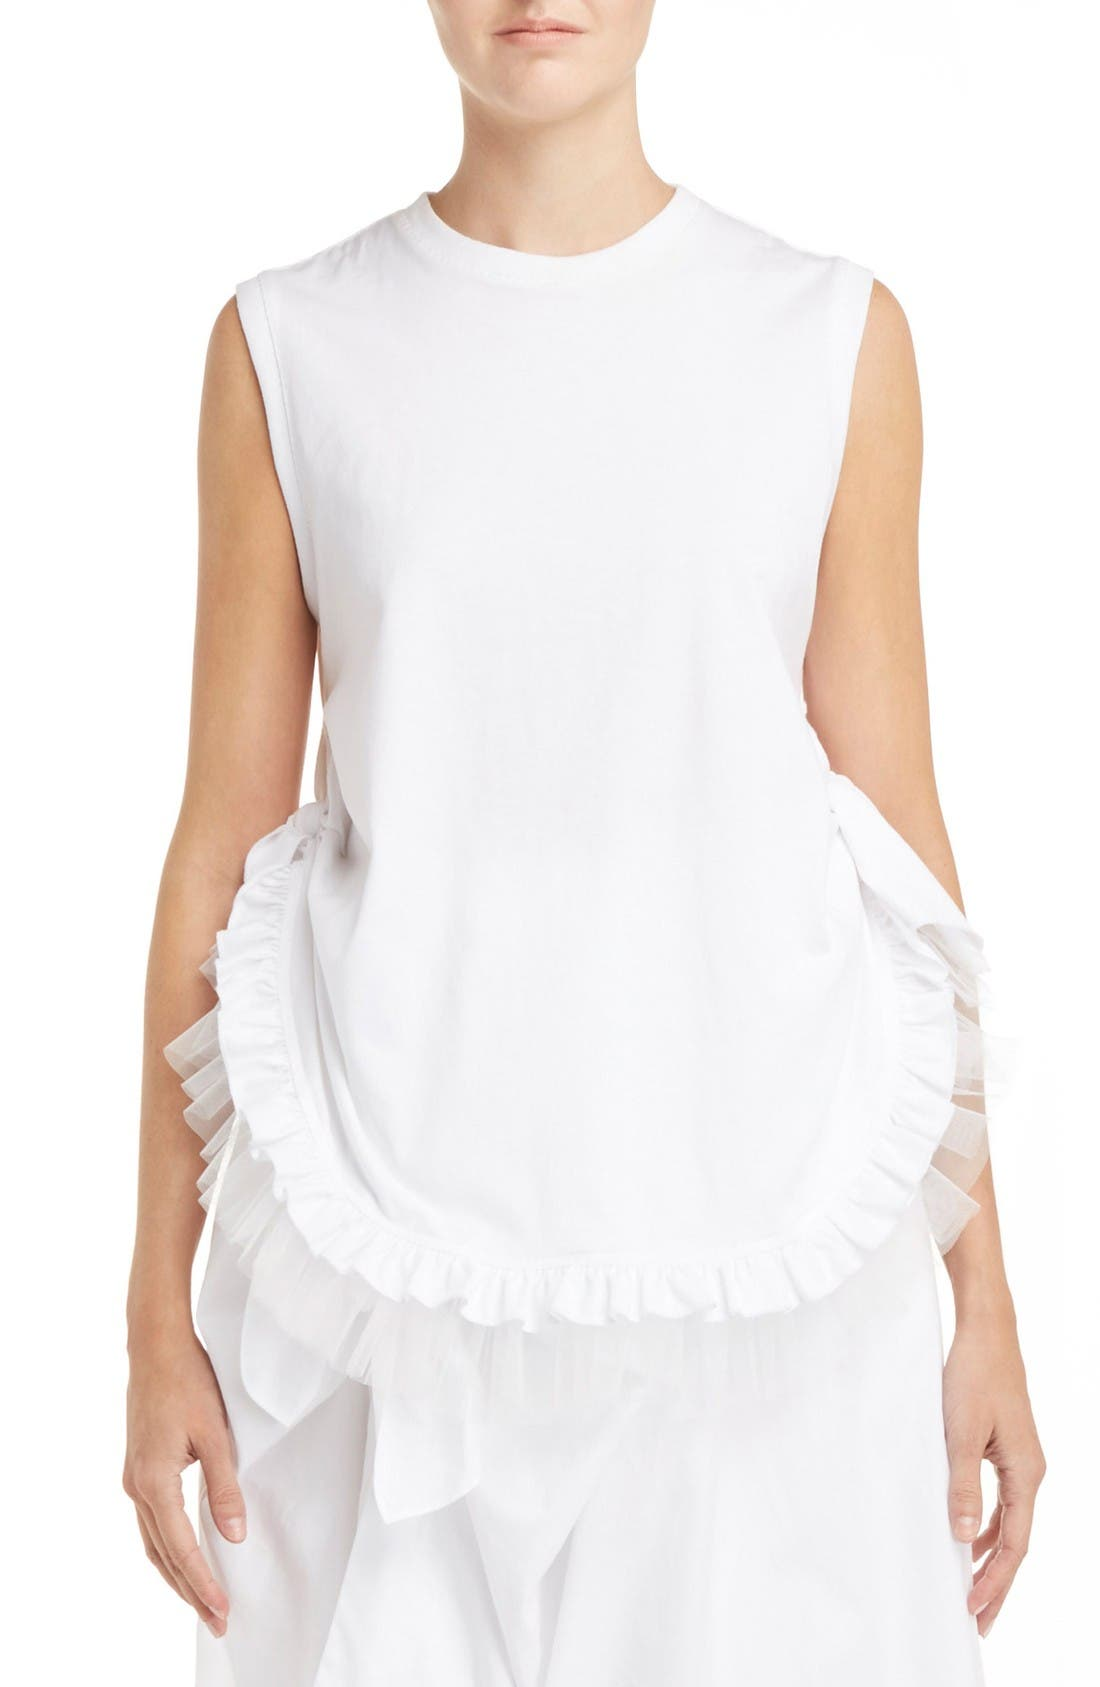 SIMONE ROCHA Knotted Frill Tee